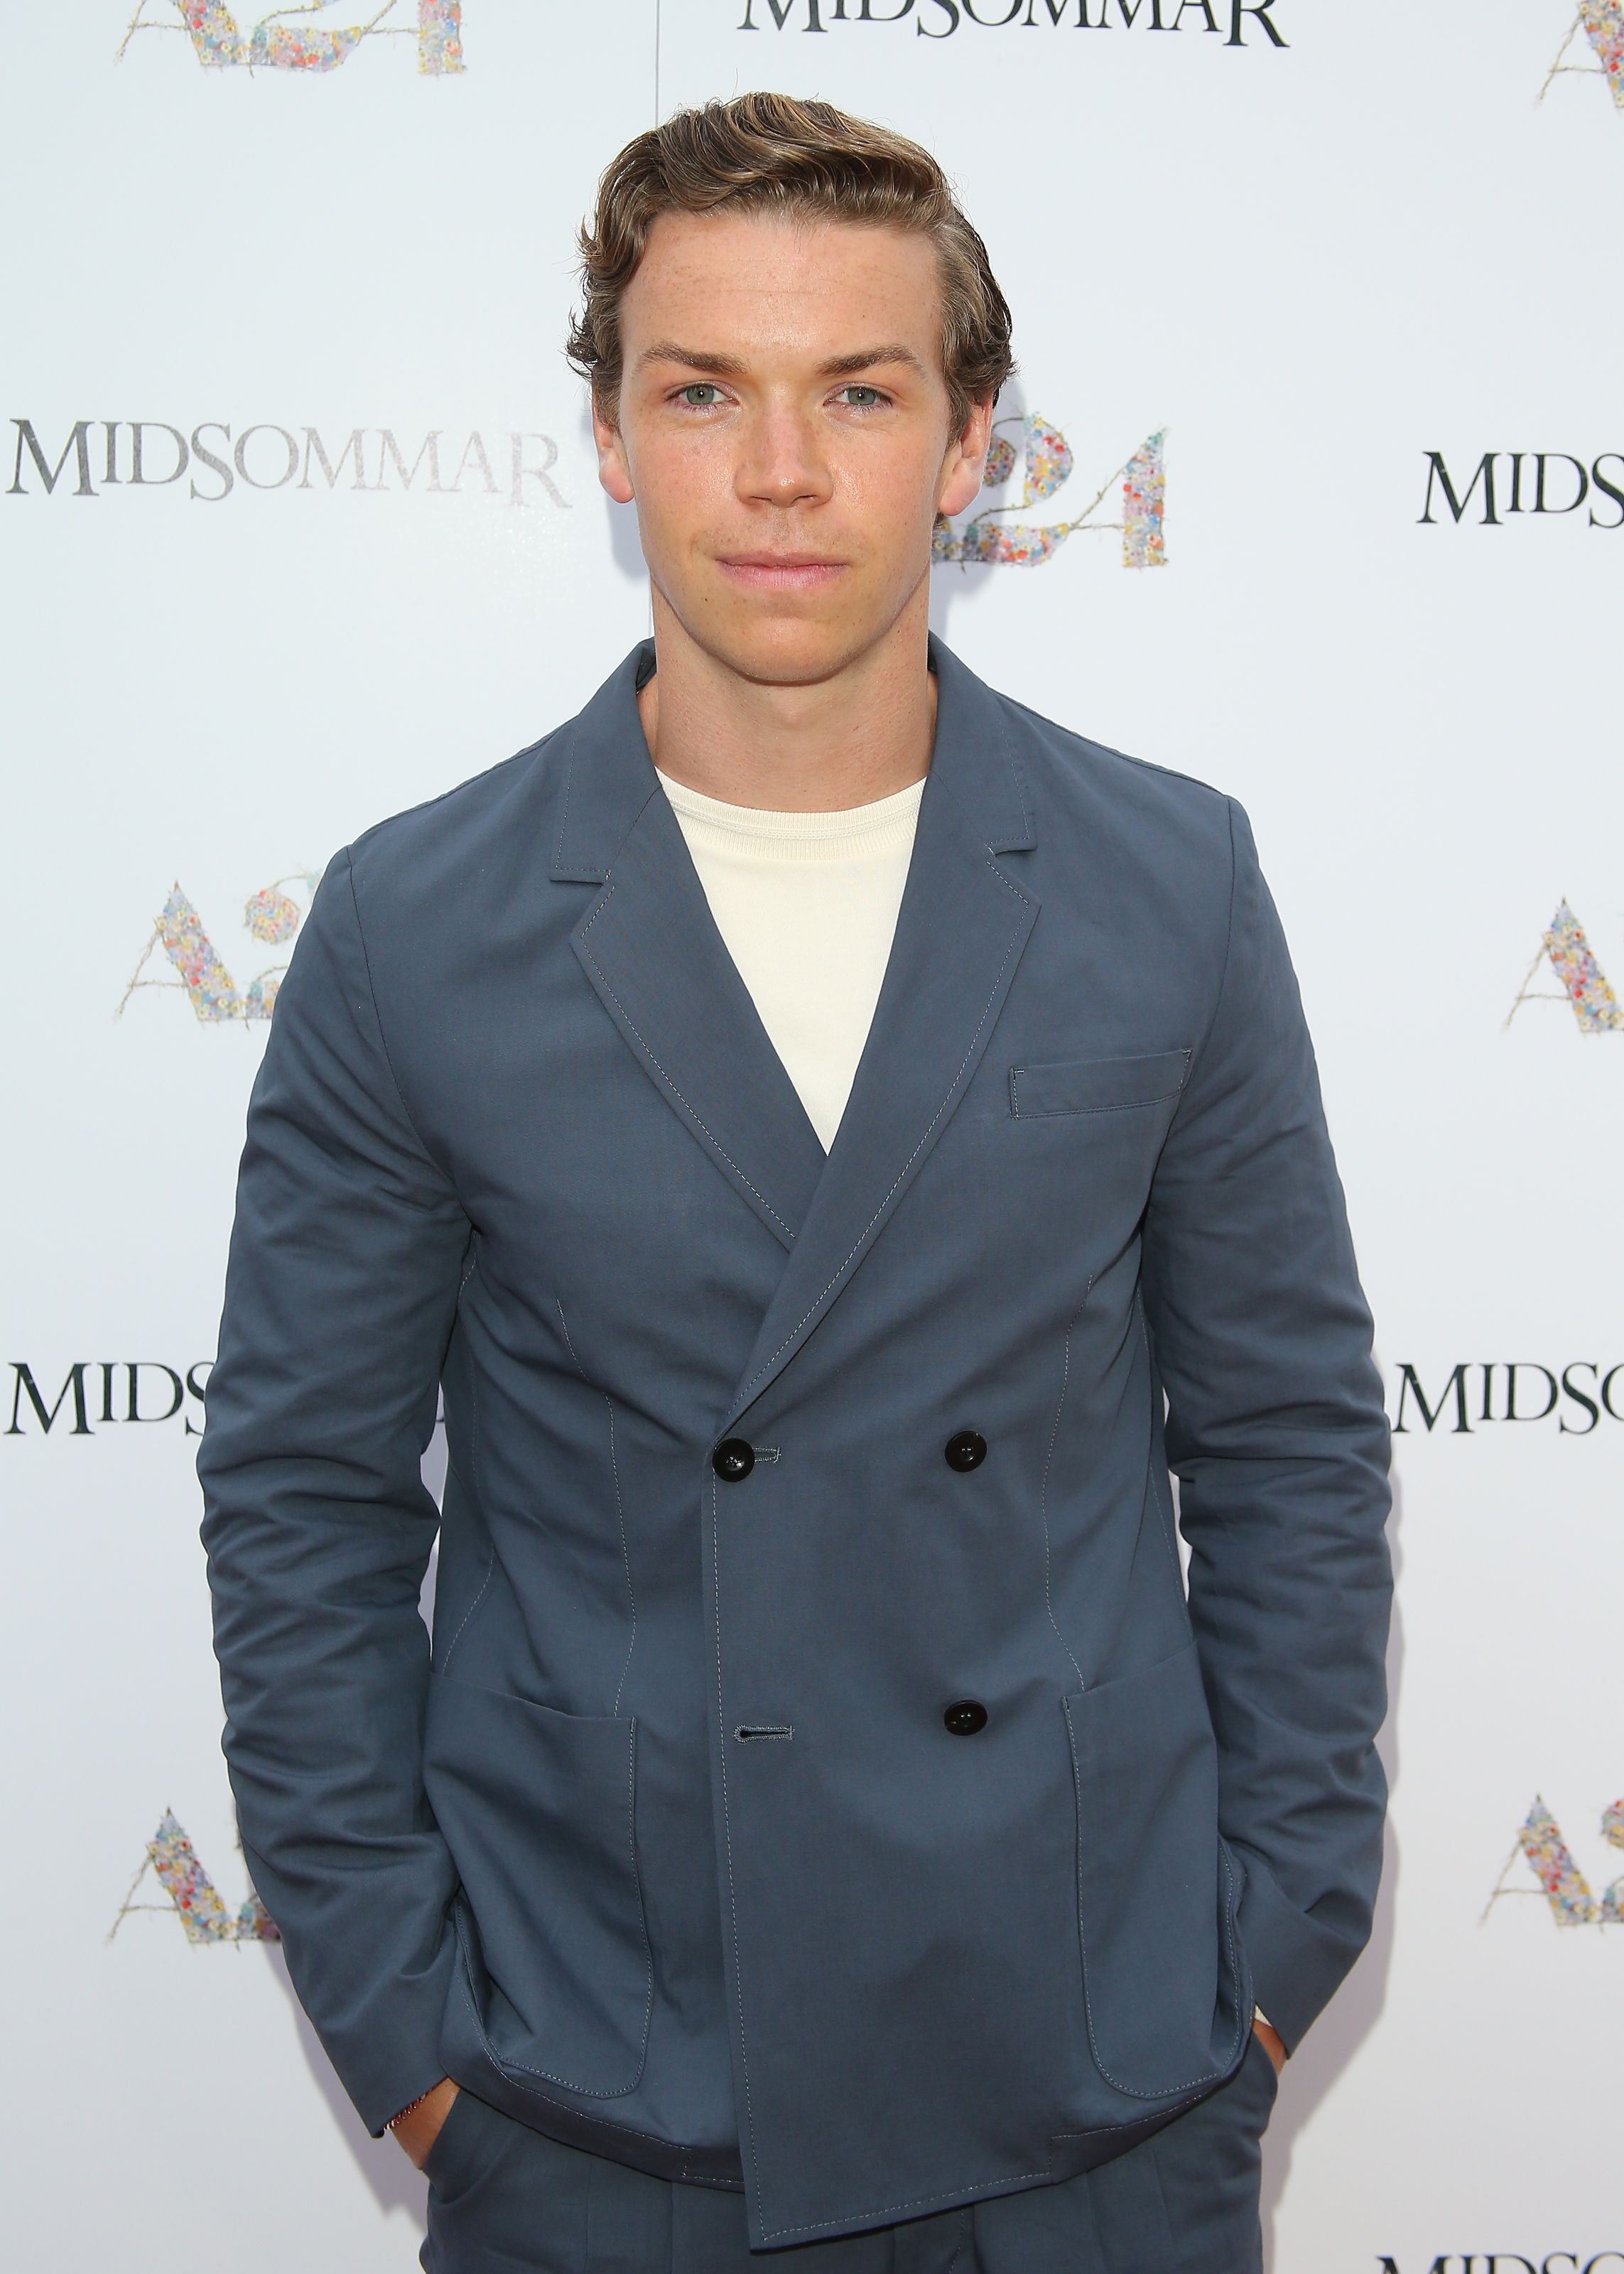 Will Poulter Is First Actor Cast For Amazon's Billion-Dollar 'Lord Of The Rings'